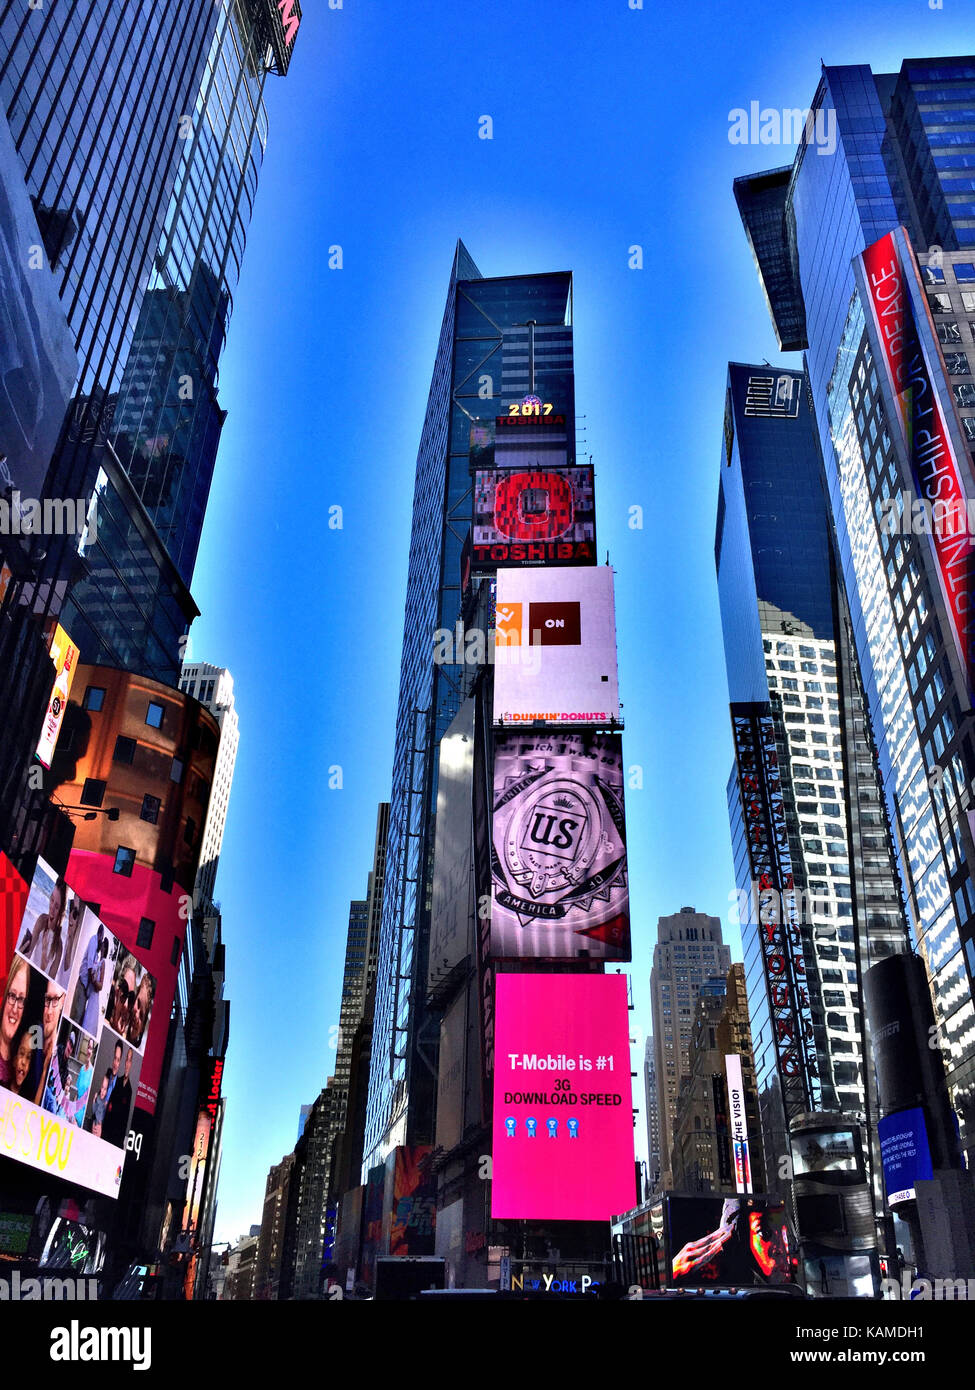 Electronic Advertising Billboards in Times Square, NYC, USA - Stock Image